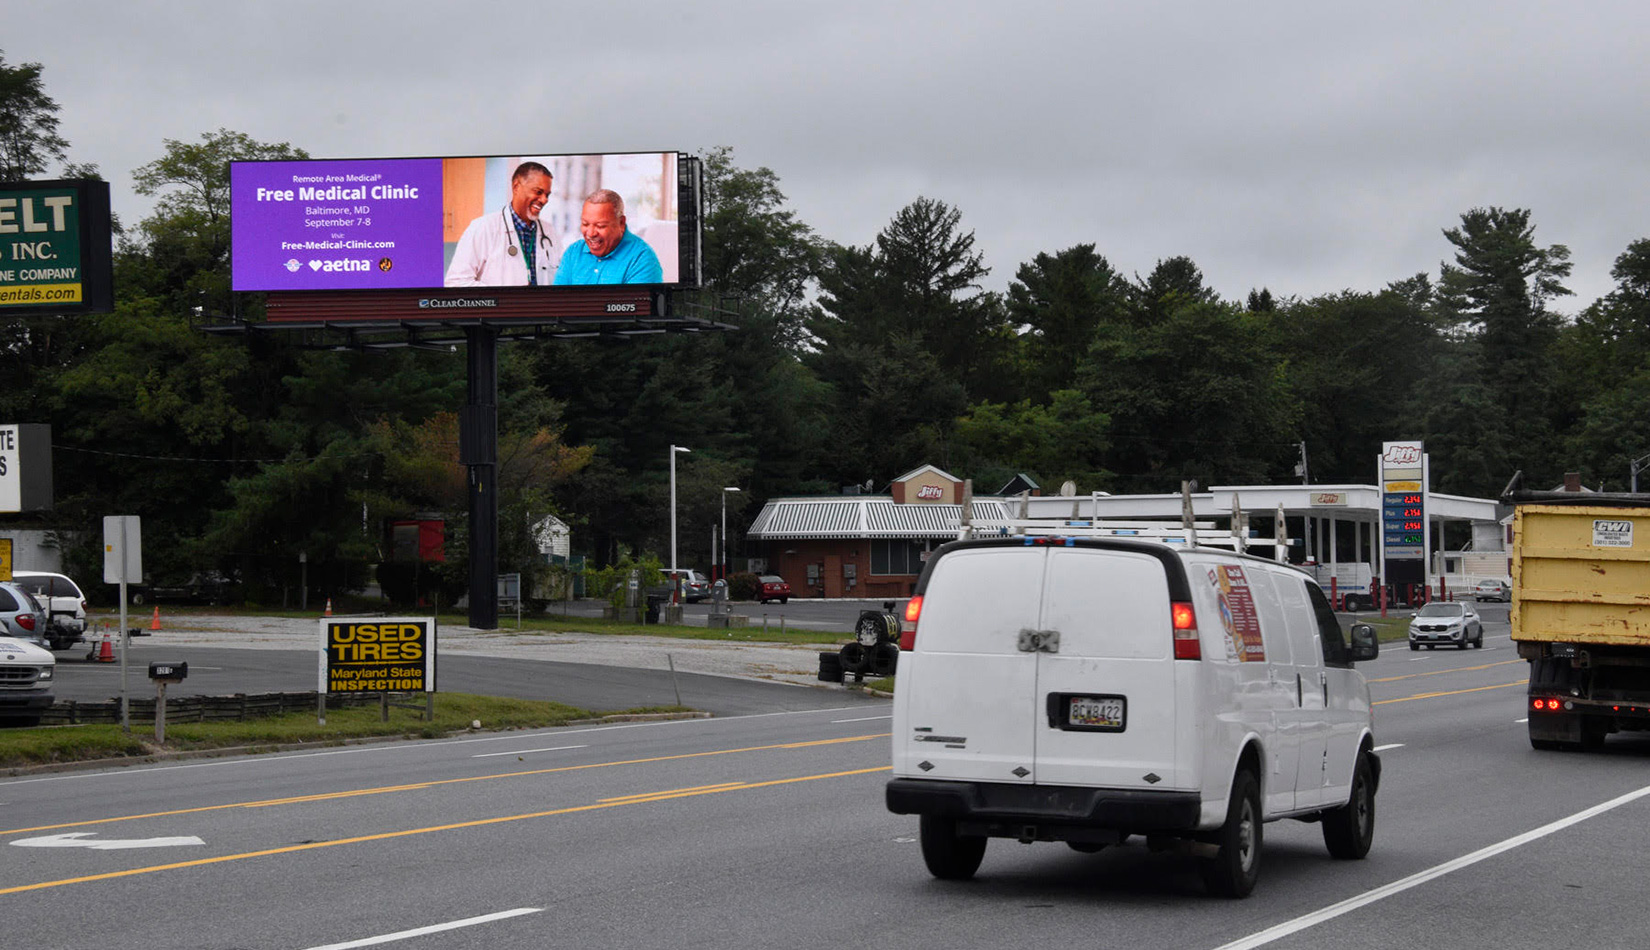 Remote Area Medical digital billboard showing free medical clinic information